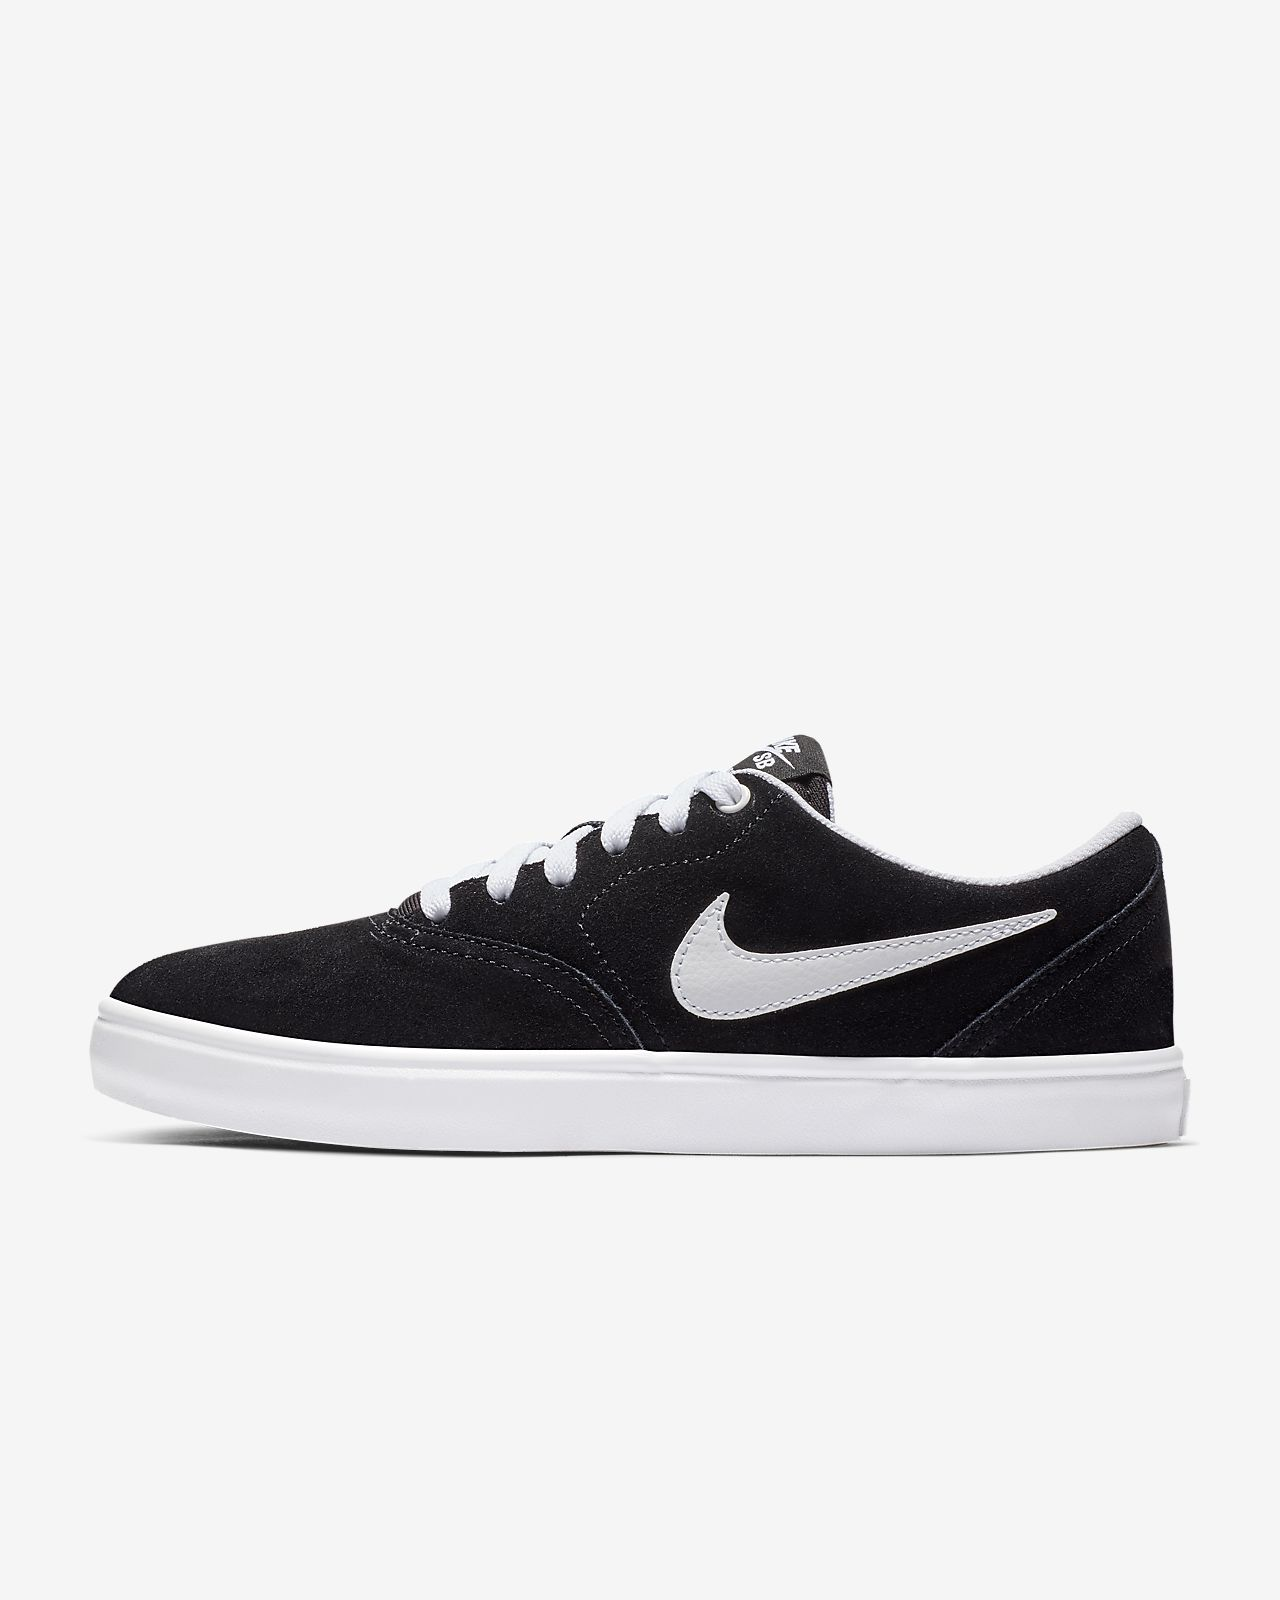 best website 540ac 80013 ... Nike SB Check Solarsoft Women s Skate Shoe